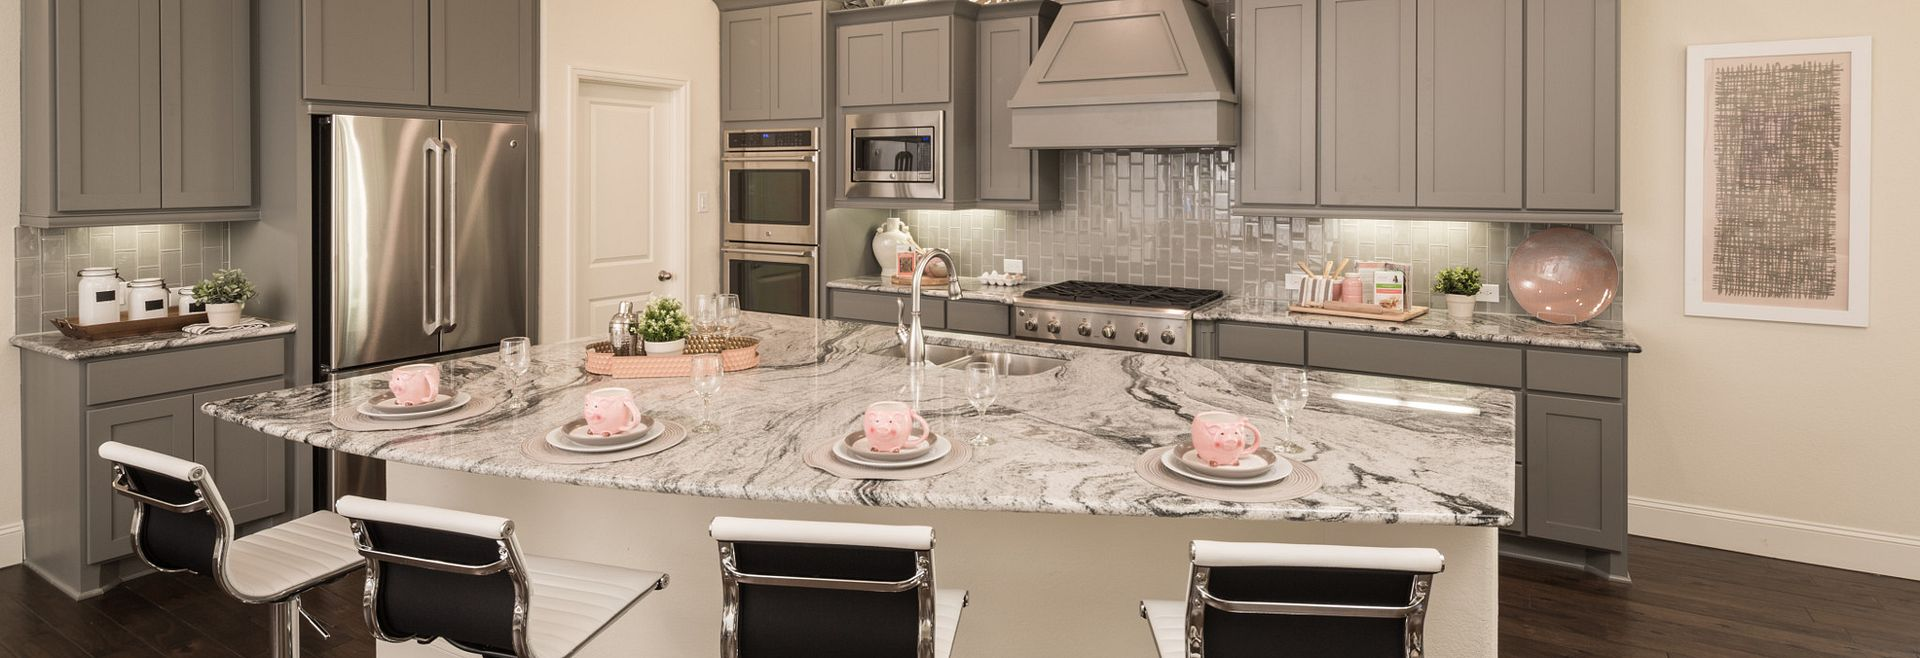 Harmony 50' Series at Vivace Plan 4117 Kitchen